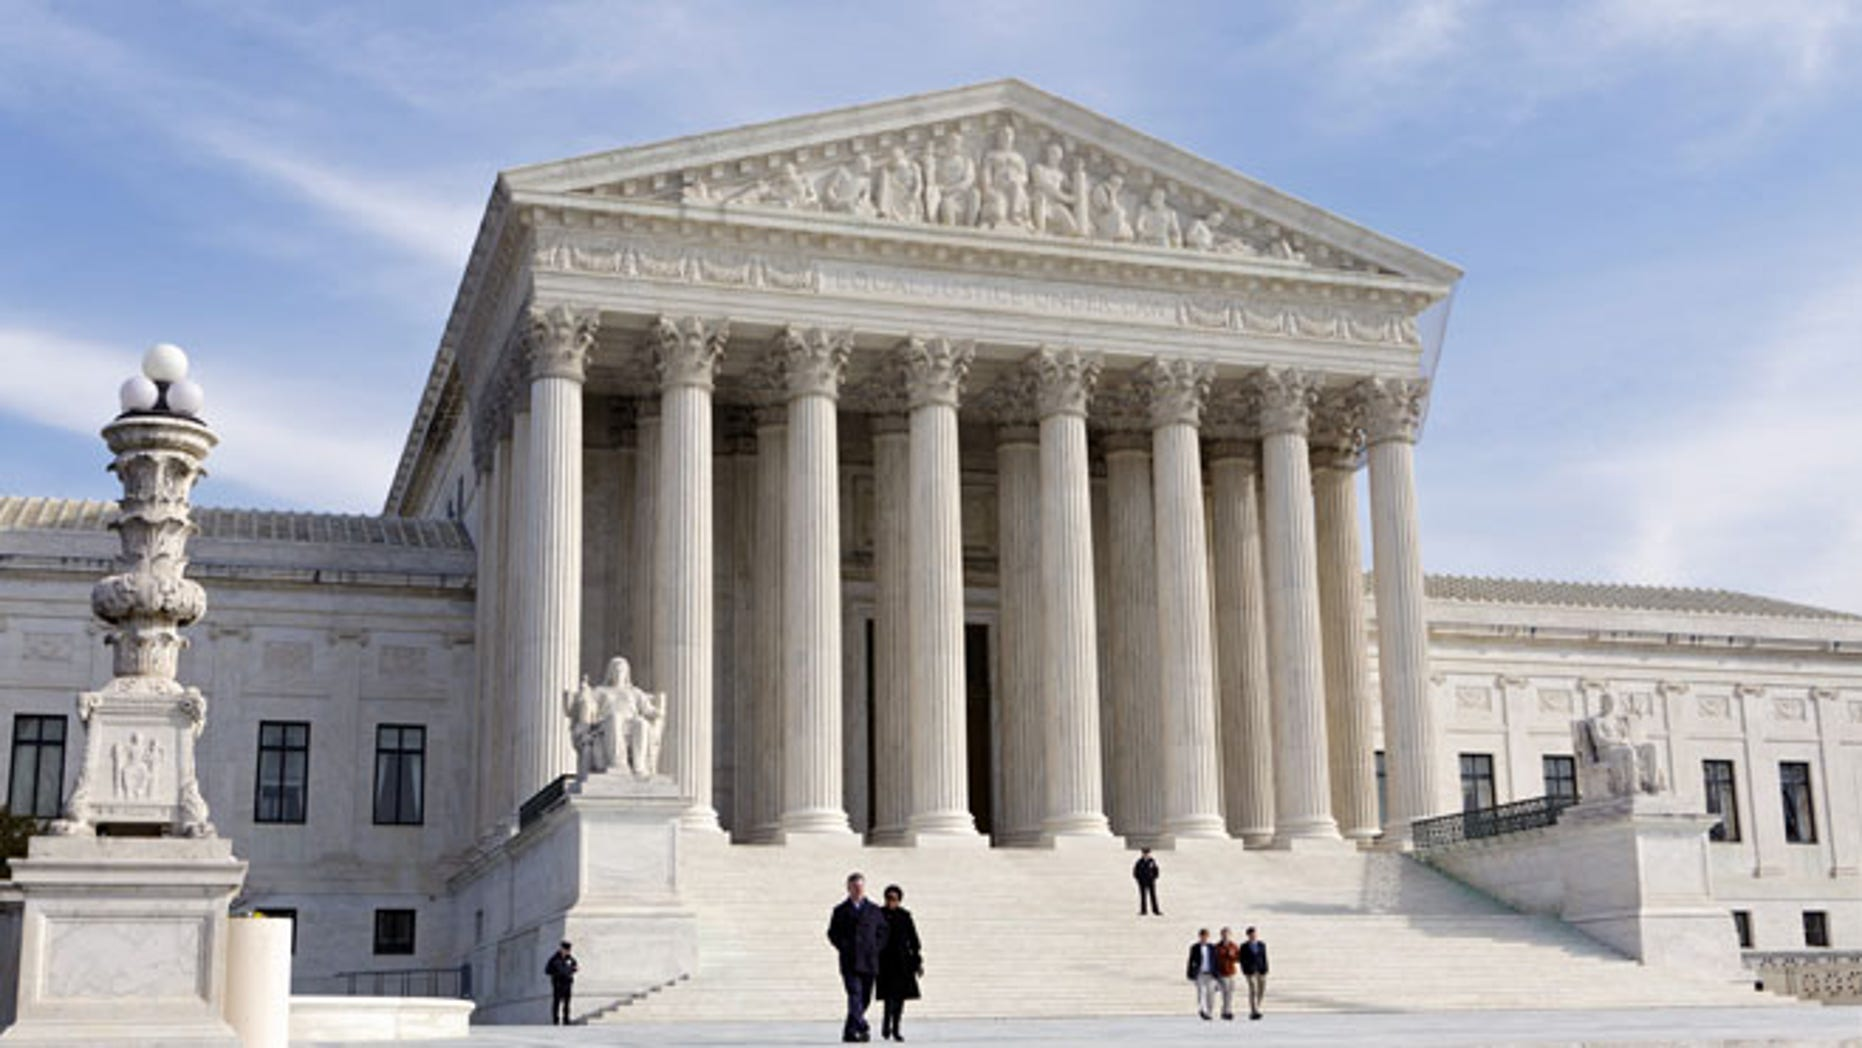 FILE - In this Jan. 25, 2012 file photo, the Supreme Court Building is seen in Washington. The Supreme Court has unanimously upheld a Texas law that counts everyone, not just eligible voters, in deciding how to draw electoral districts.   (AP Photo/J. Scott Applewhite, File)